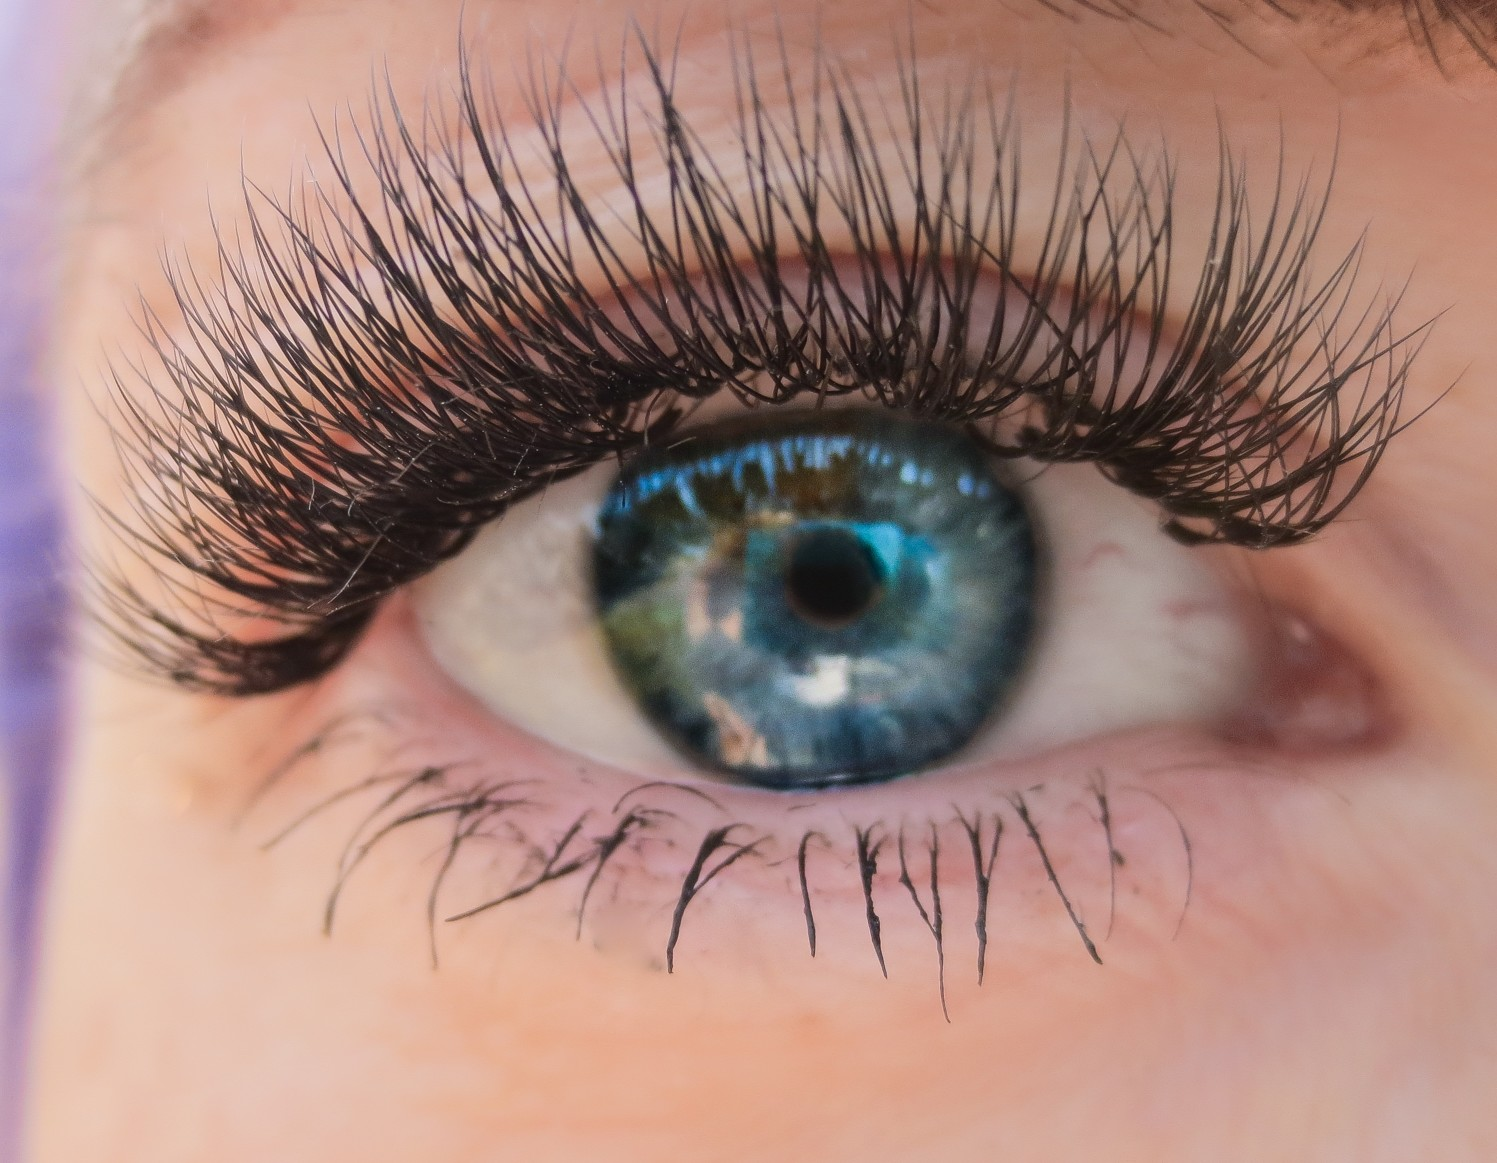 a-girl-smiles-more-when-she-has-nice-lashes_t20_AlLrom